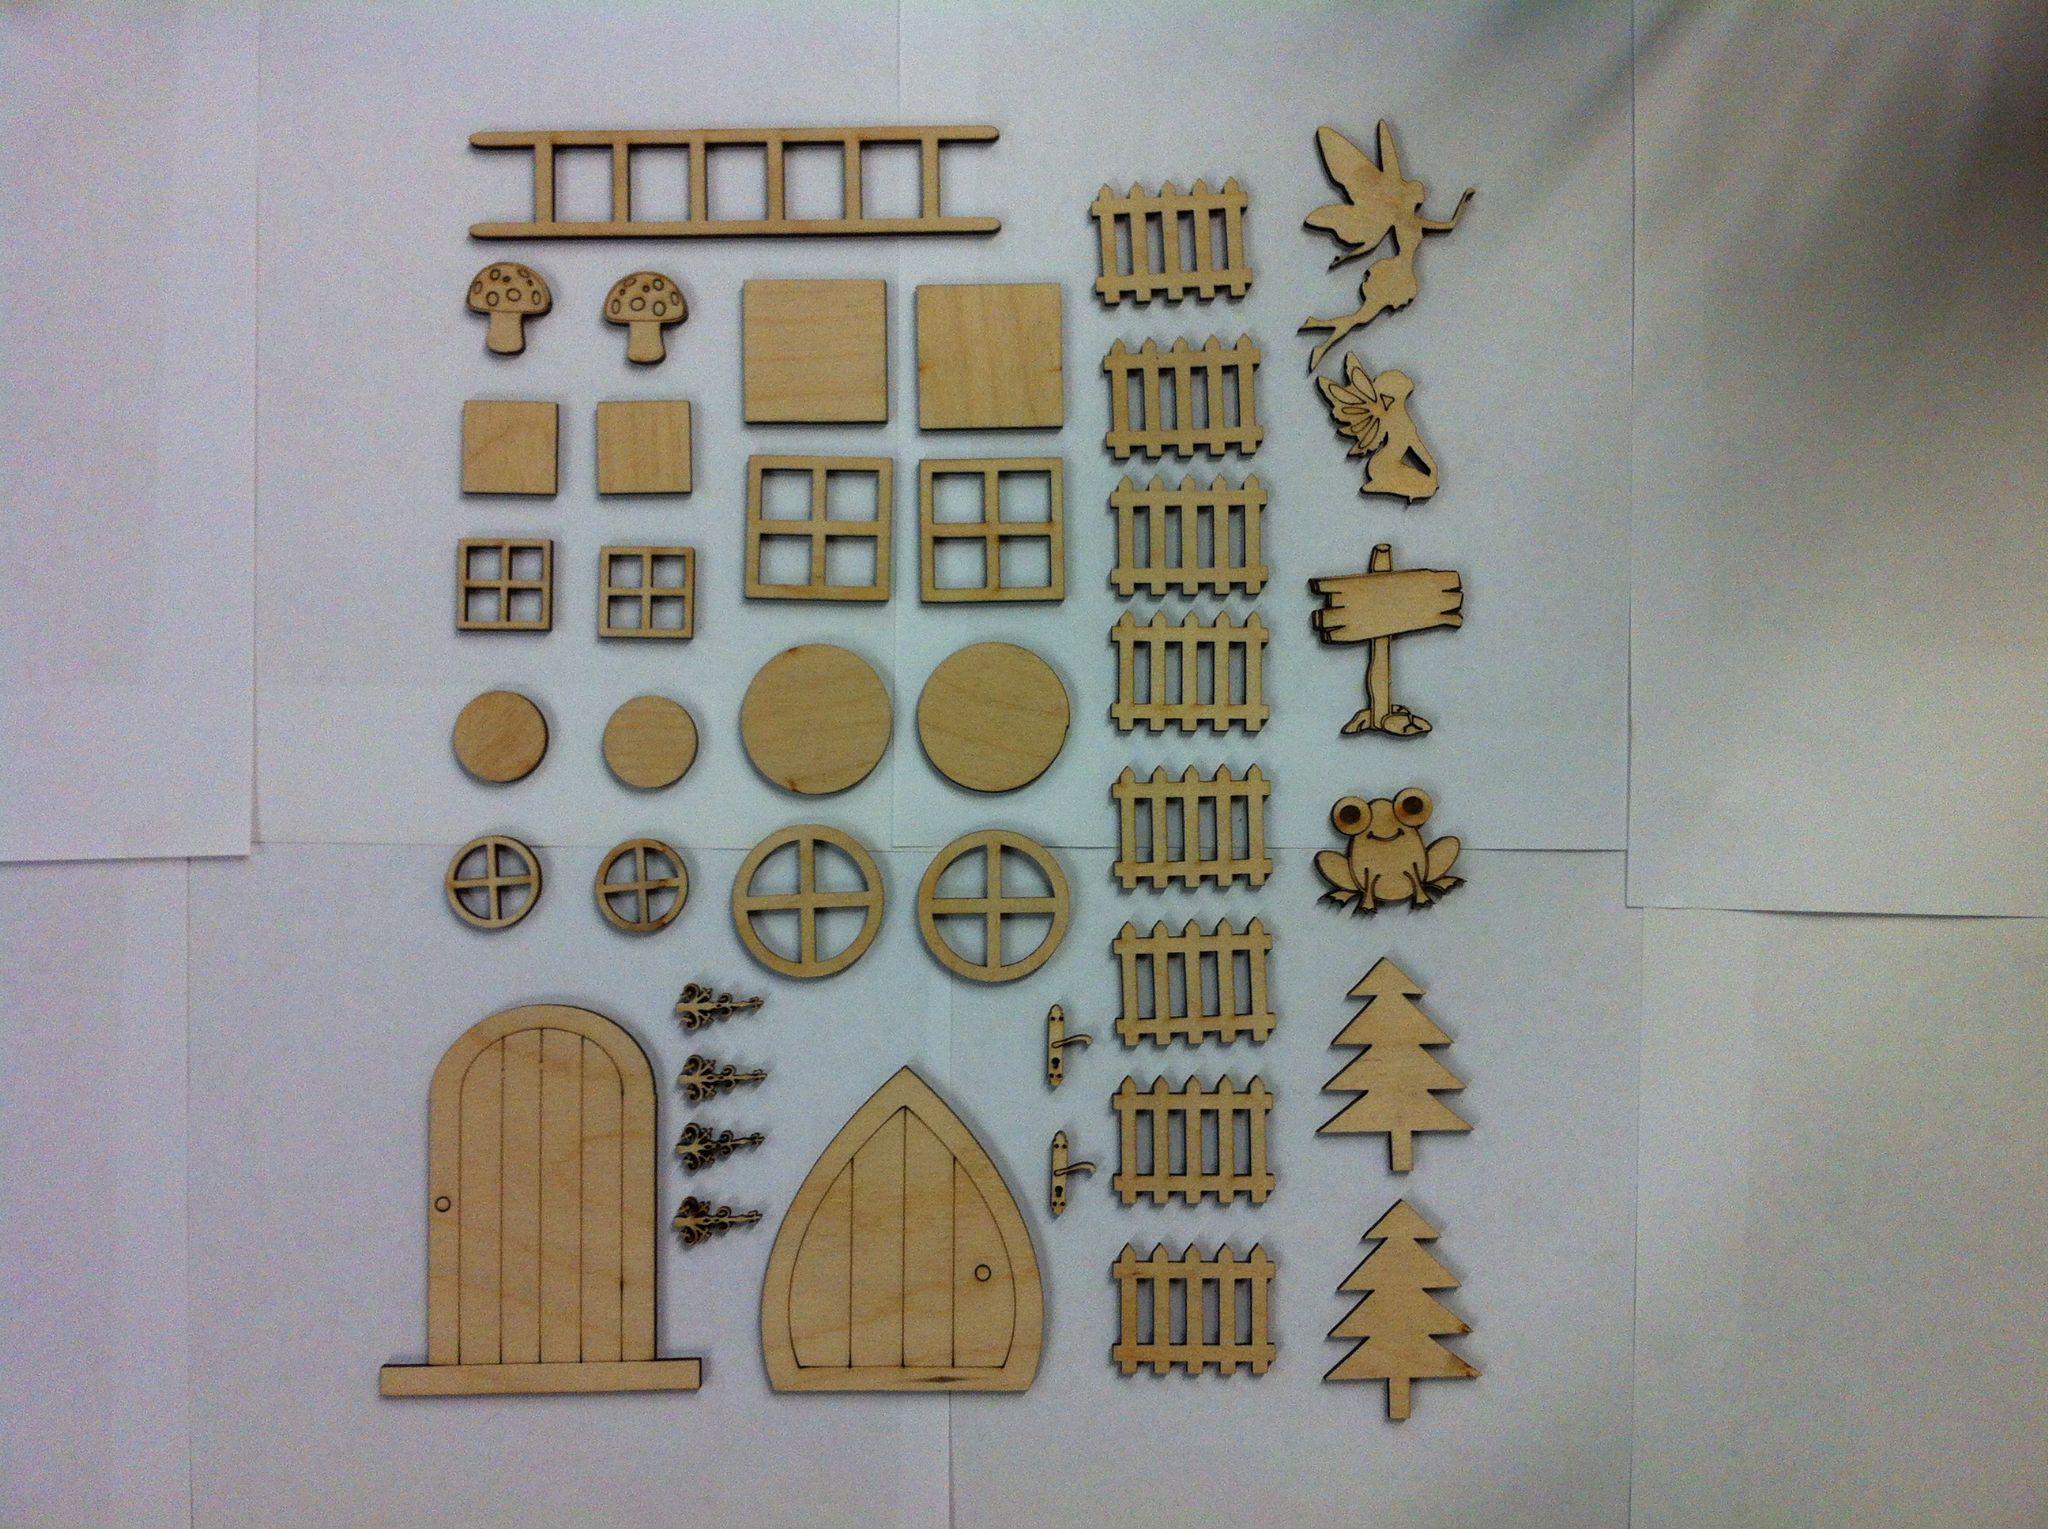 Fairy hobbit elf door window accessories 41 piece mega for Elf door accessories